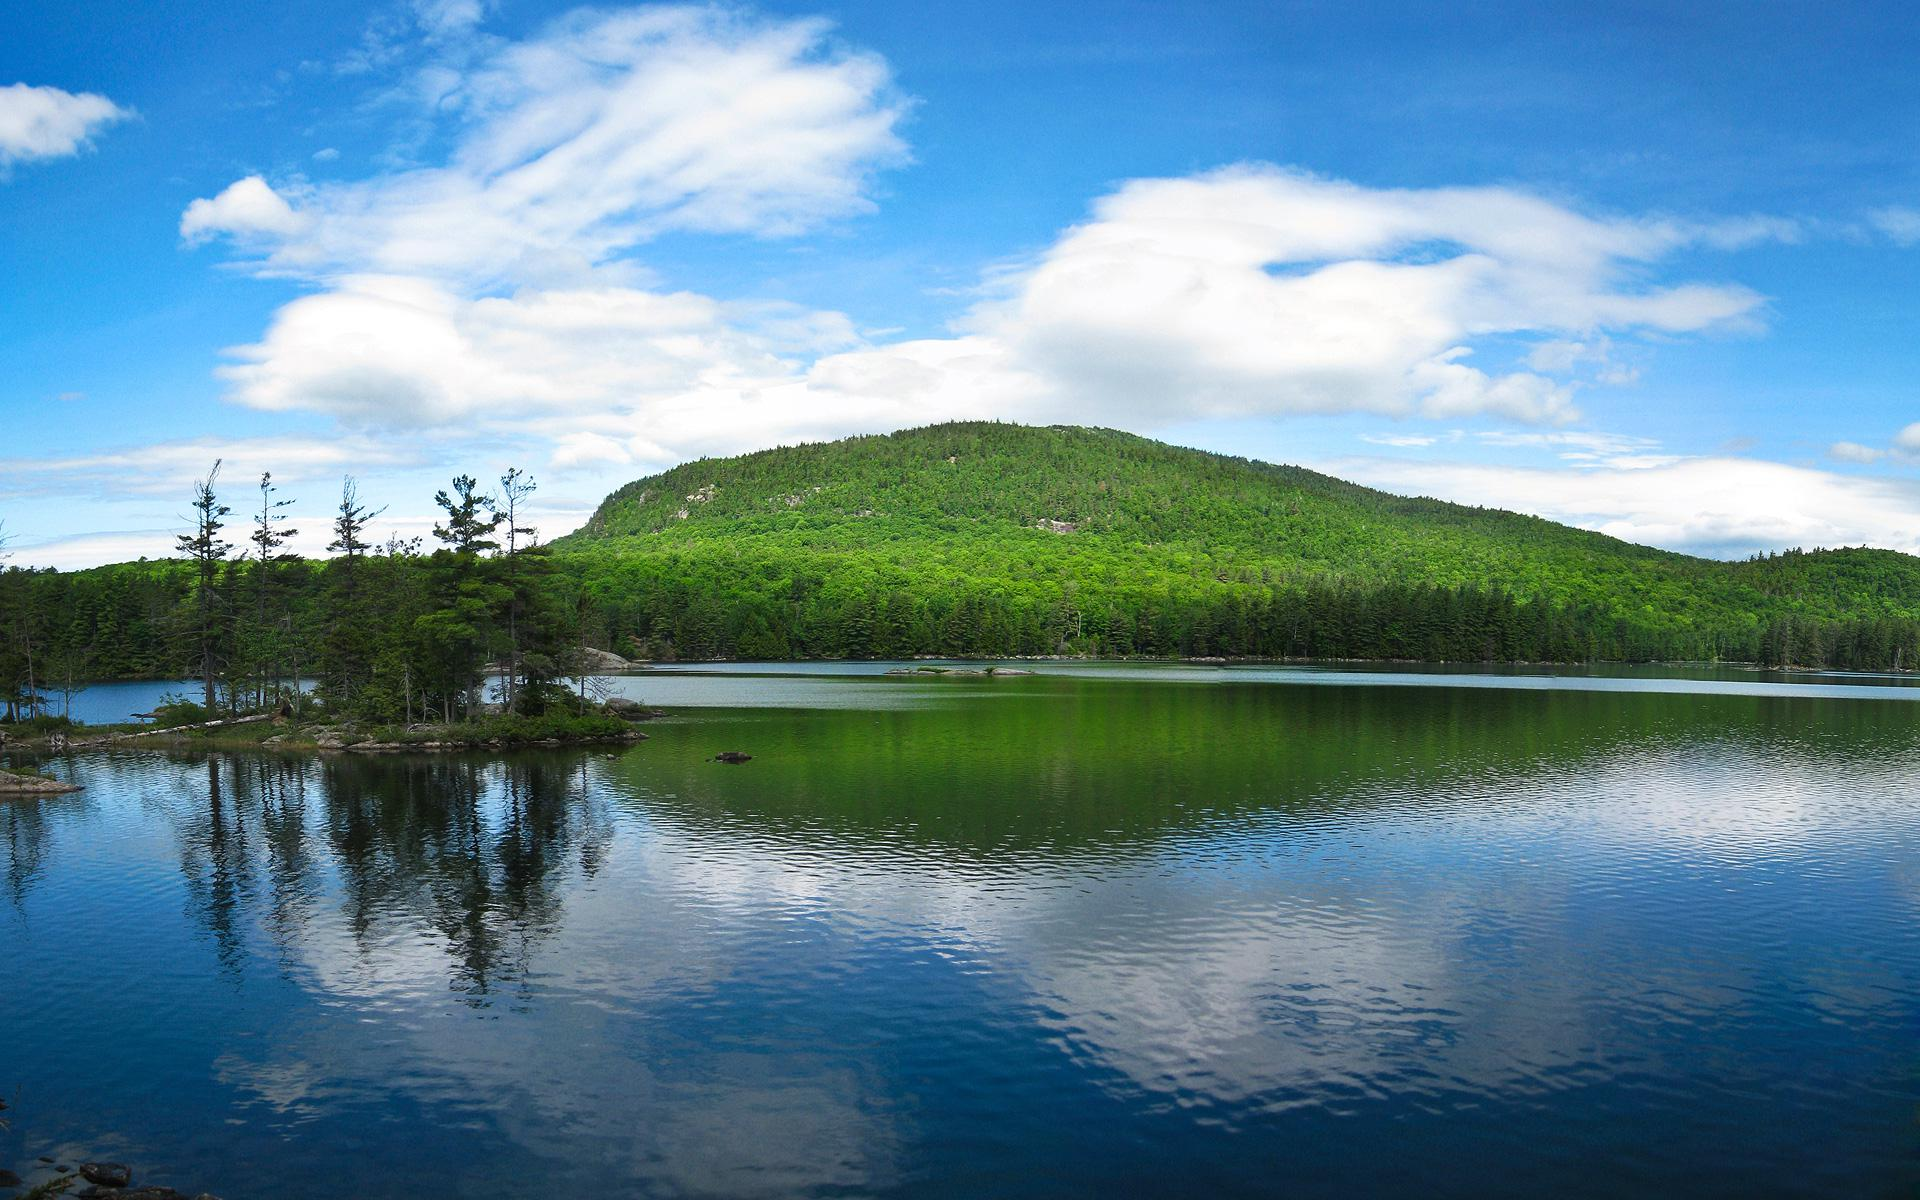 Adirondack state park new york   118779   High Quality and 1920x1200